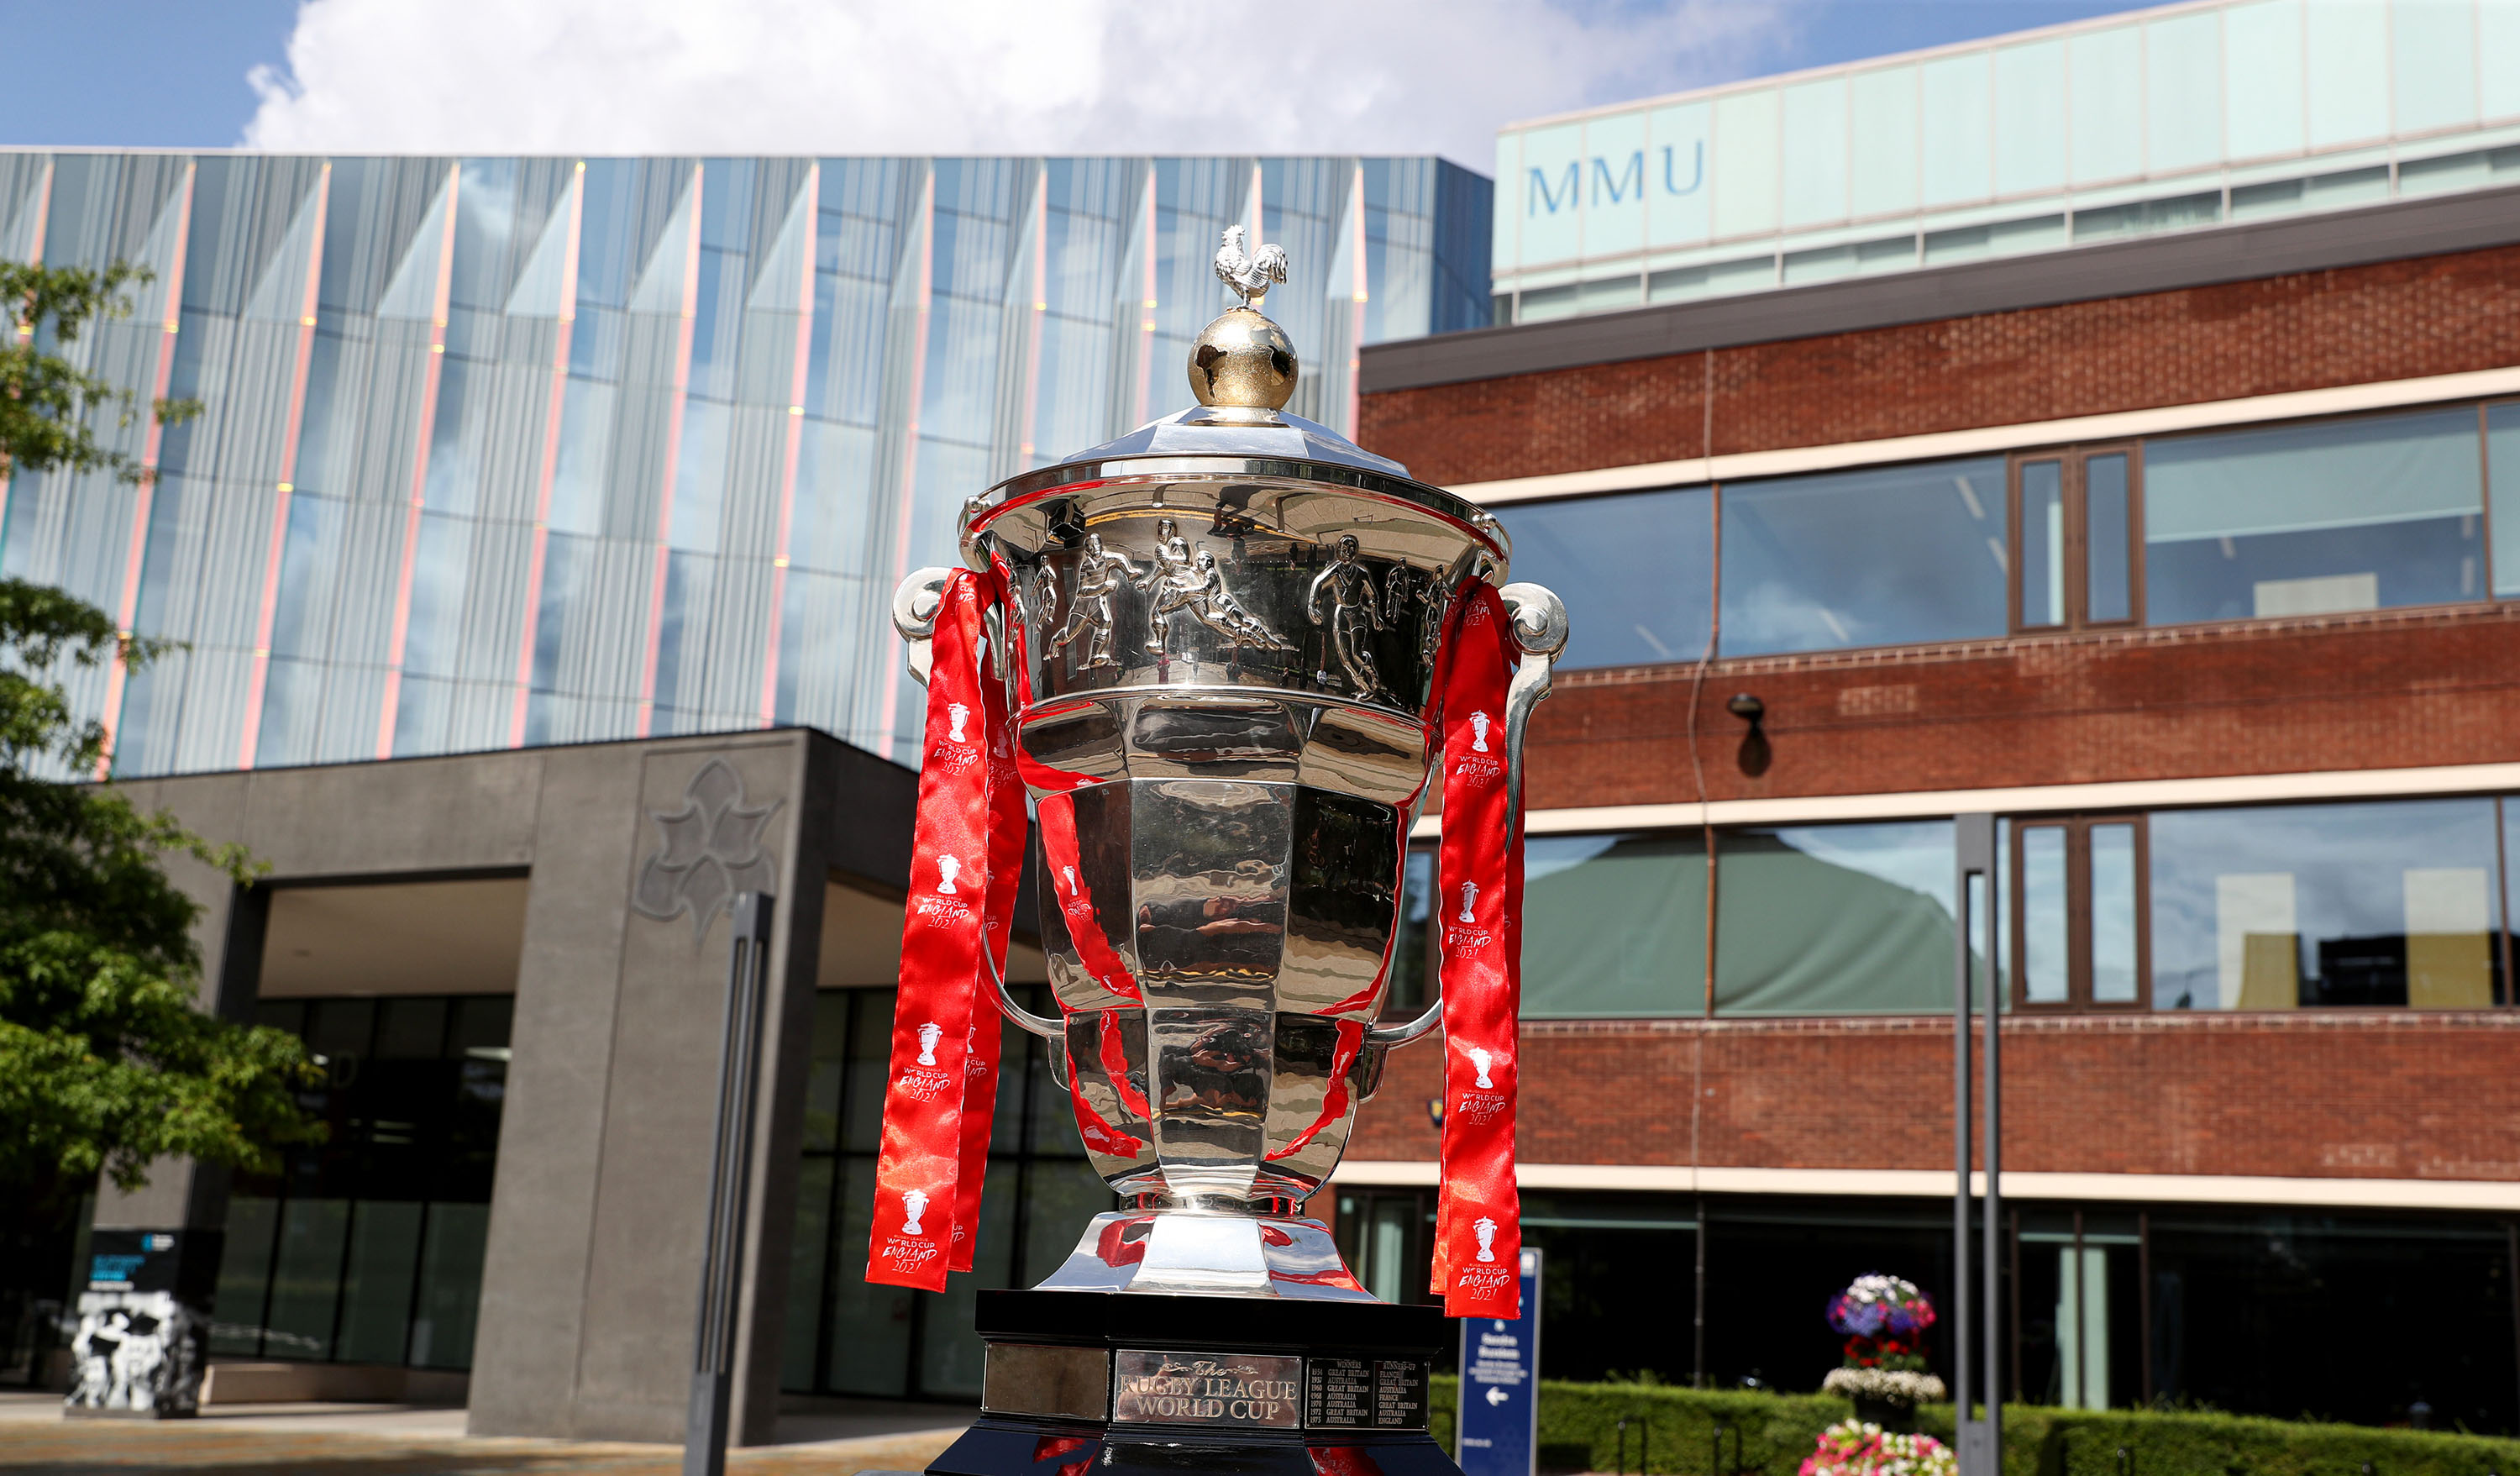 The Rugby League World Cup trophy at Manchester Metropolitan